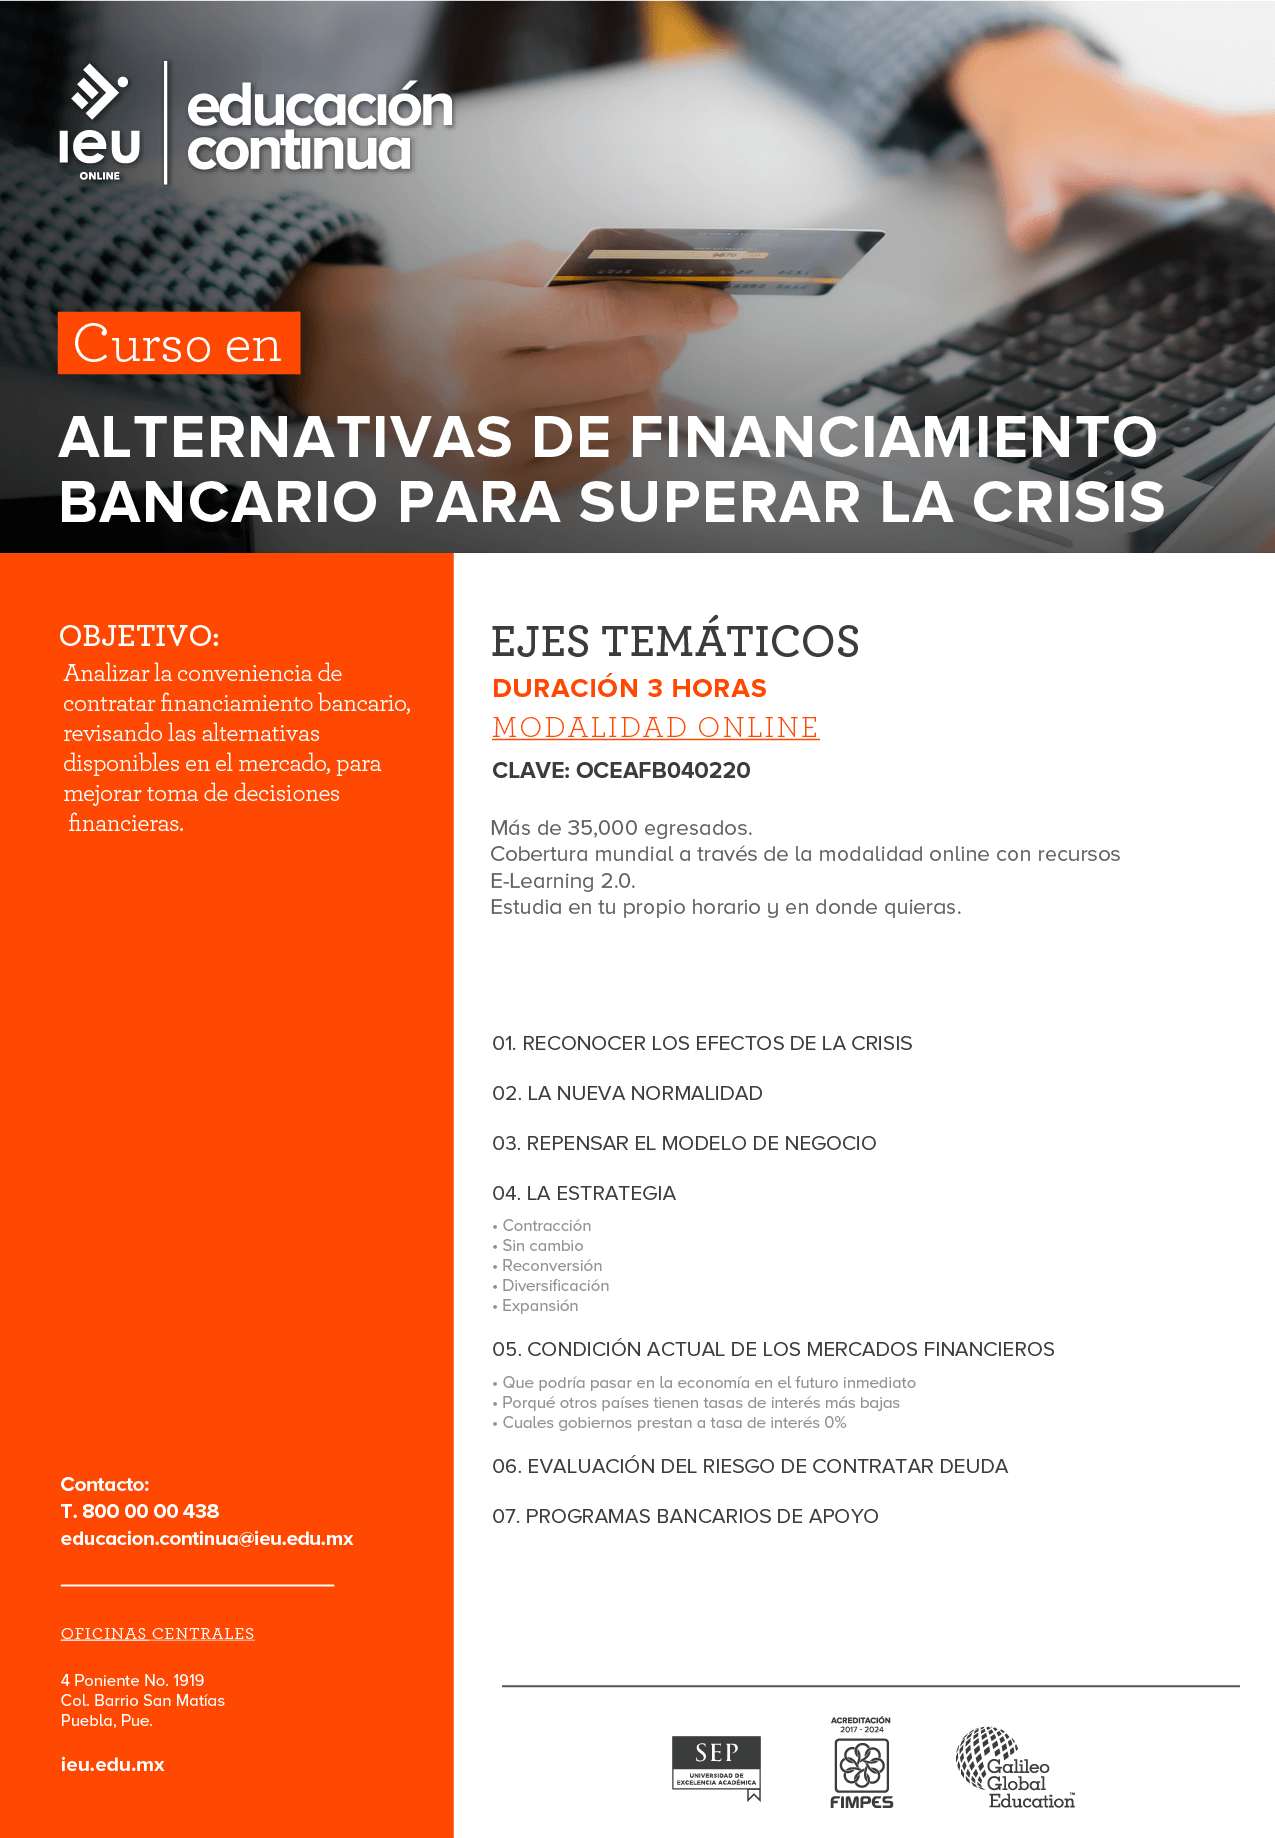 Alternativas de financiamiento bancario para superar la crisis